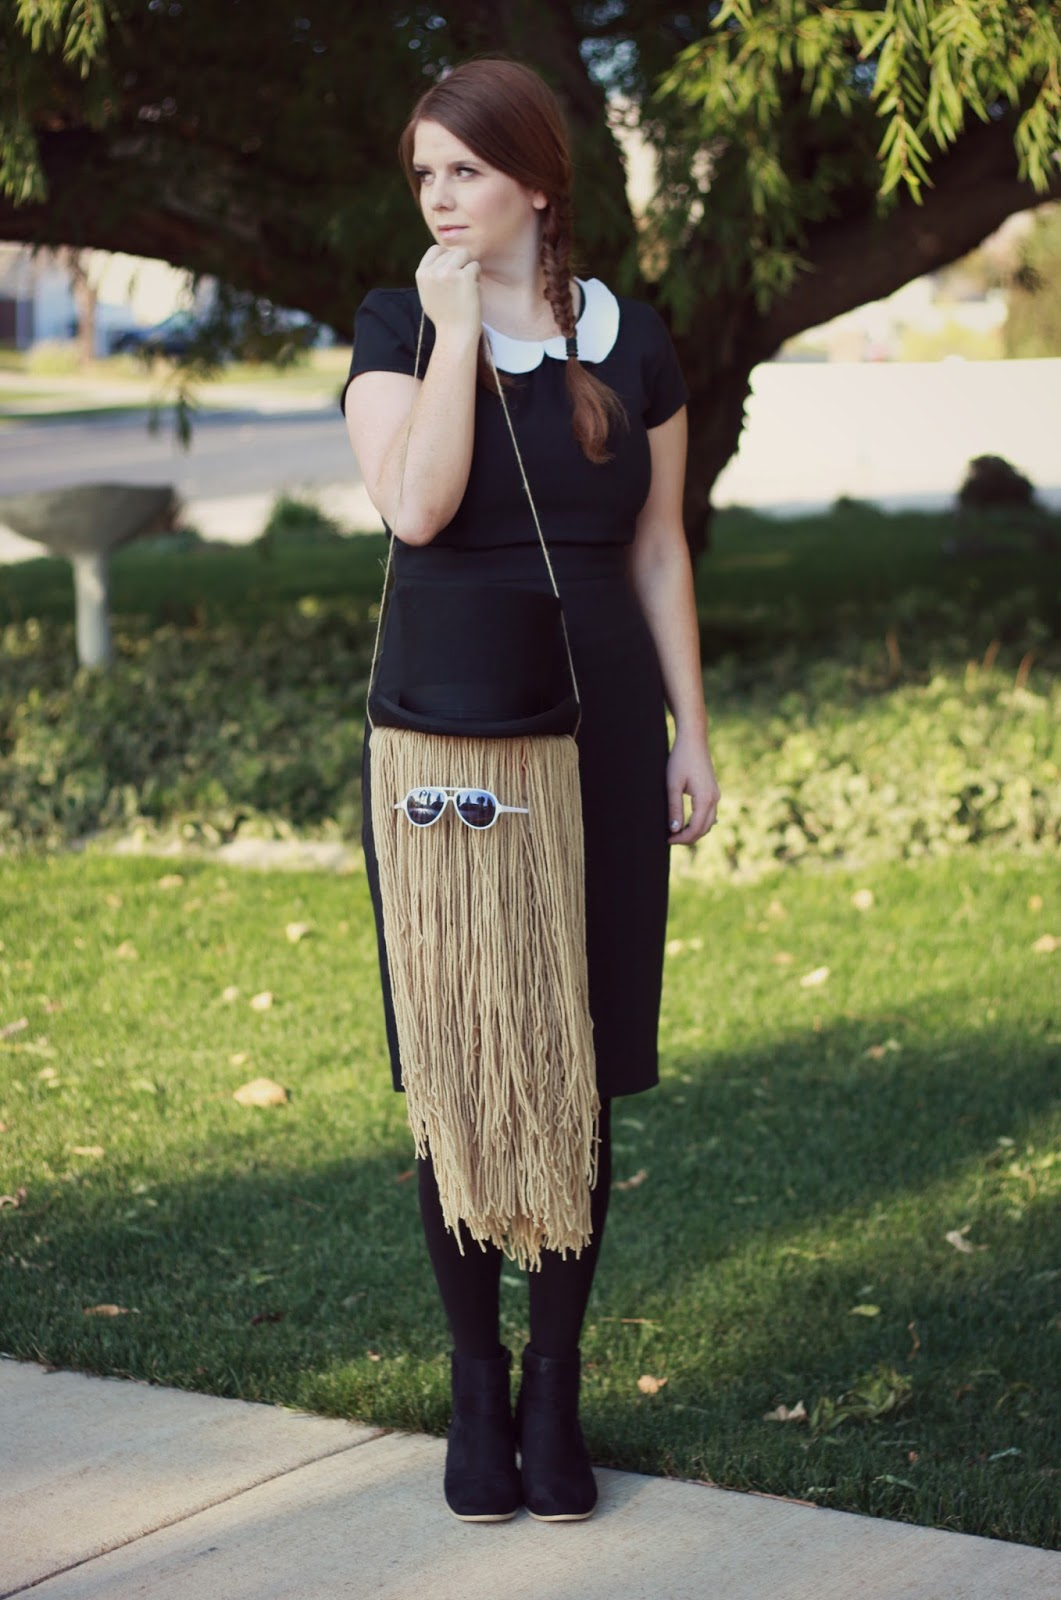 DIY Halloween Costume: Wednesday Addams and Cousin It graphic